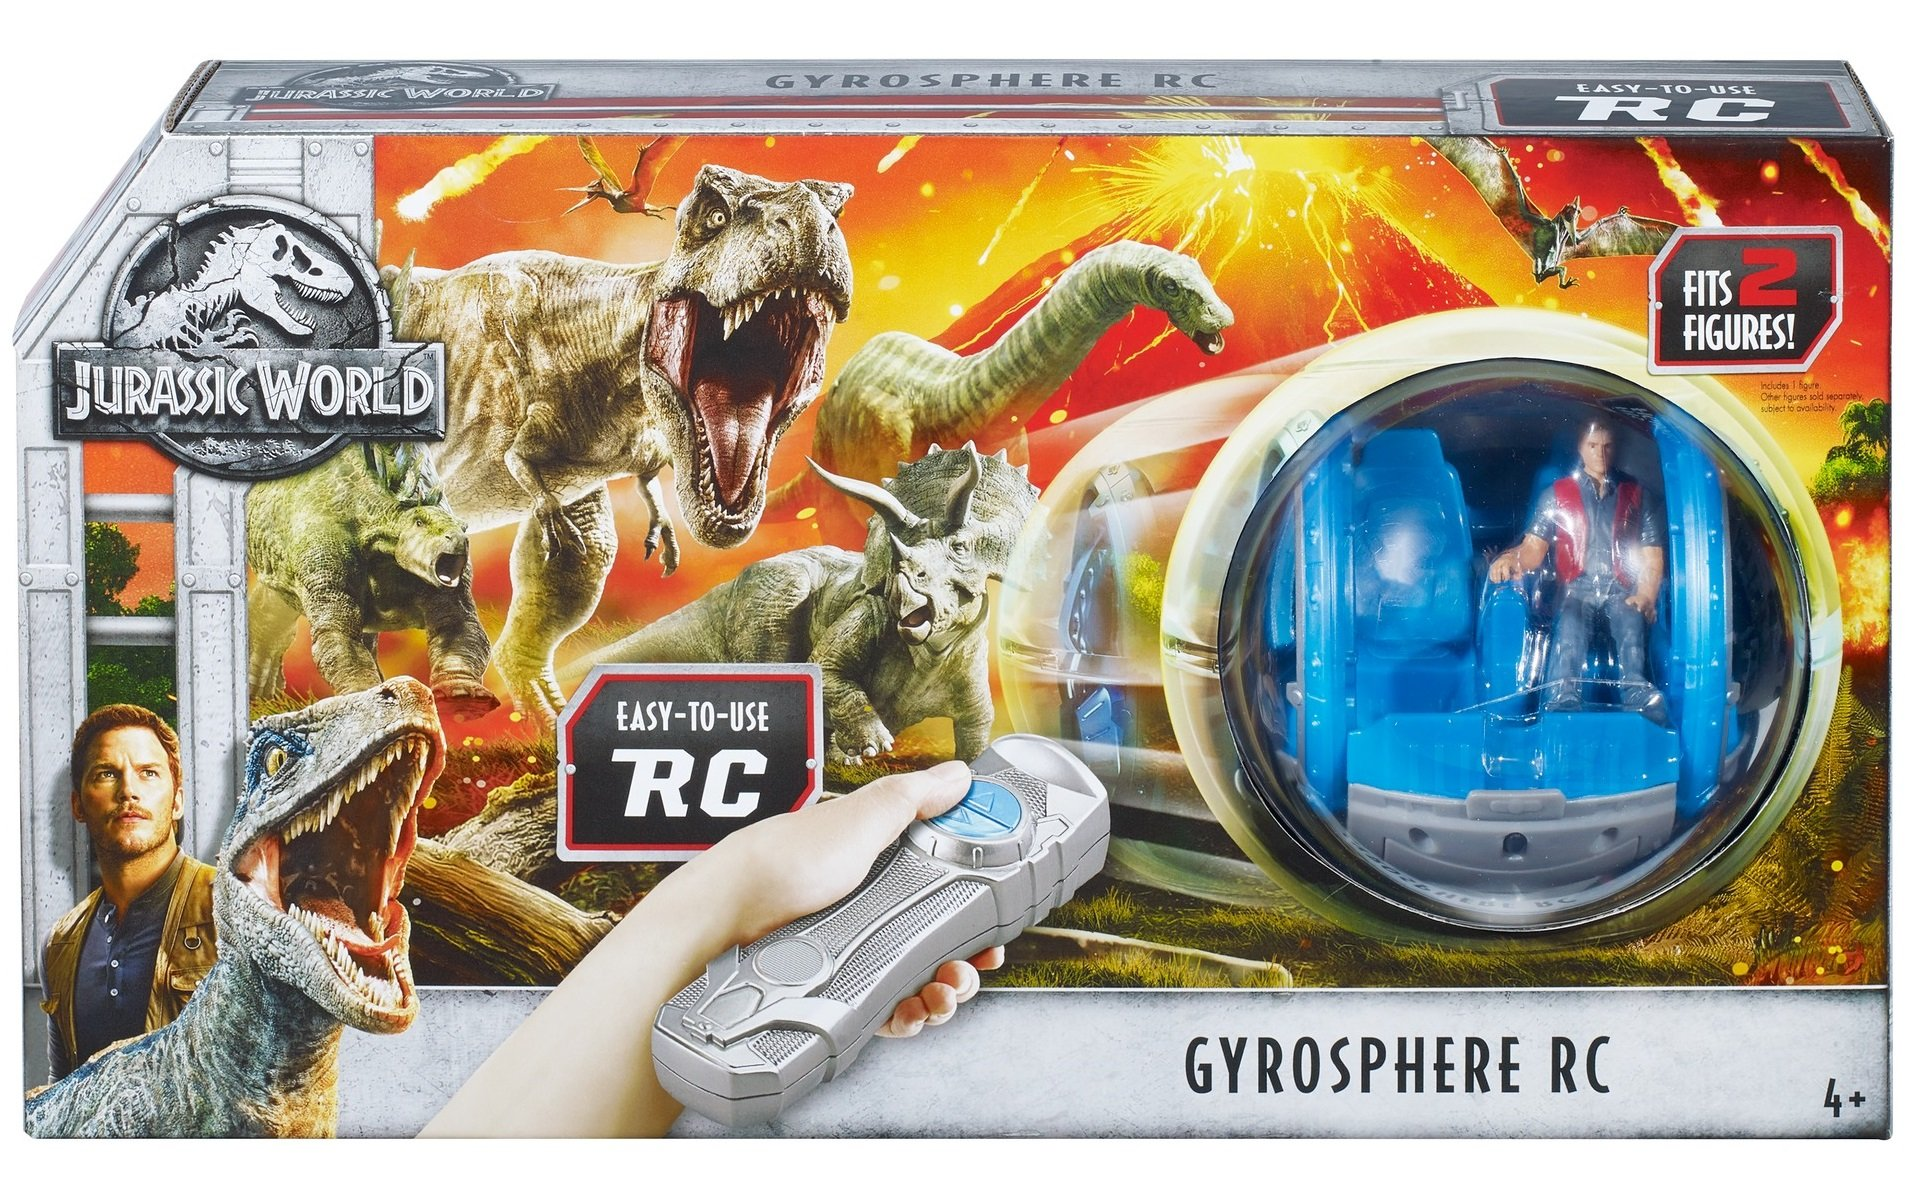 Jurassic World Gyrosphere RC Vehicle by Jurassic World Toys (Image #6)